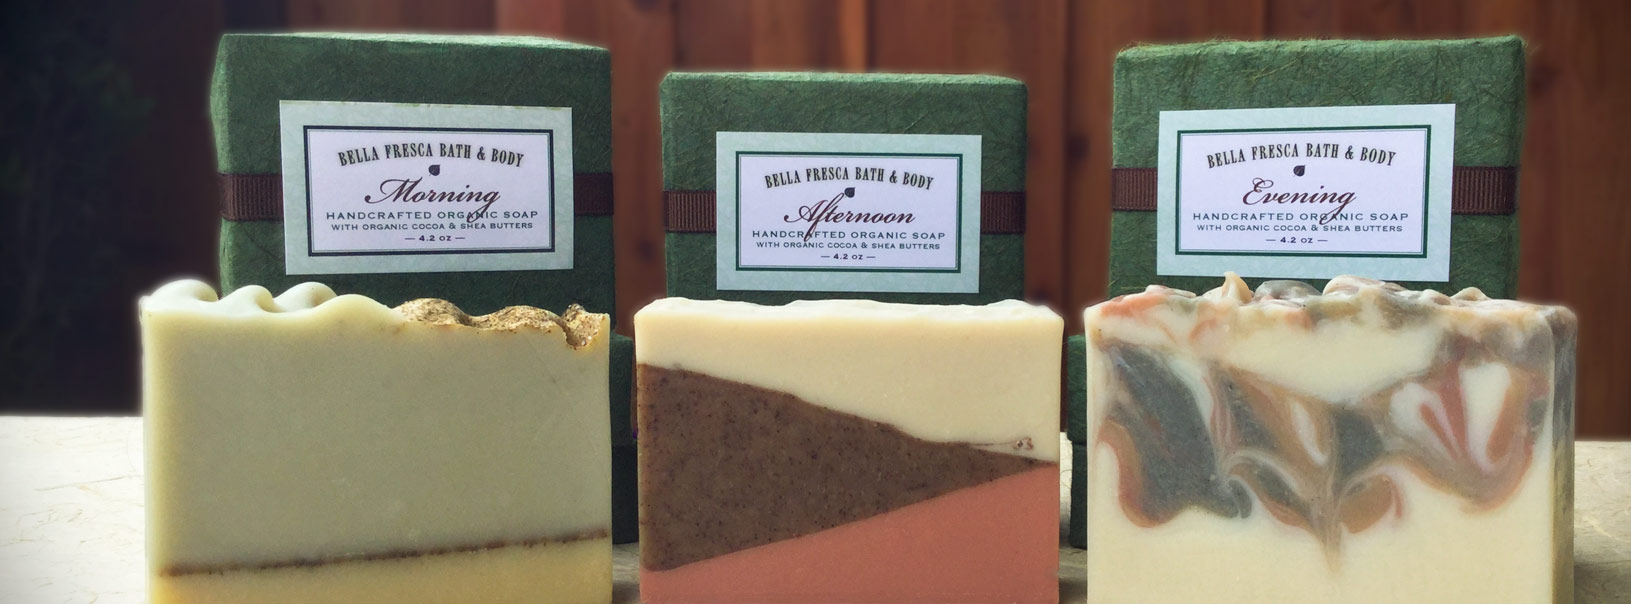 organic soaps and packaging